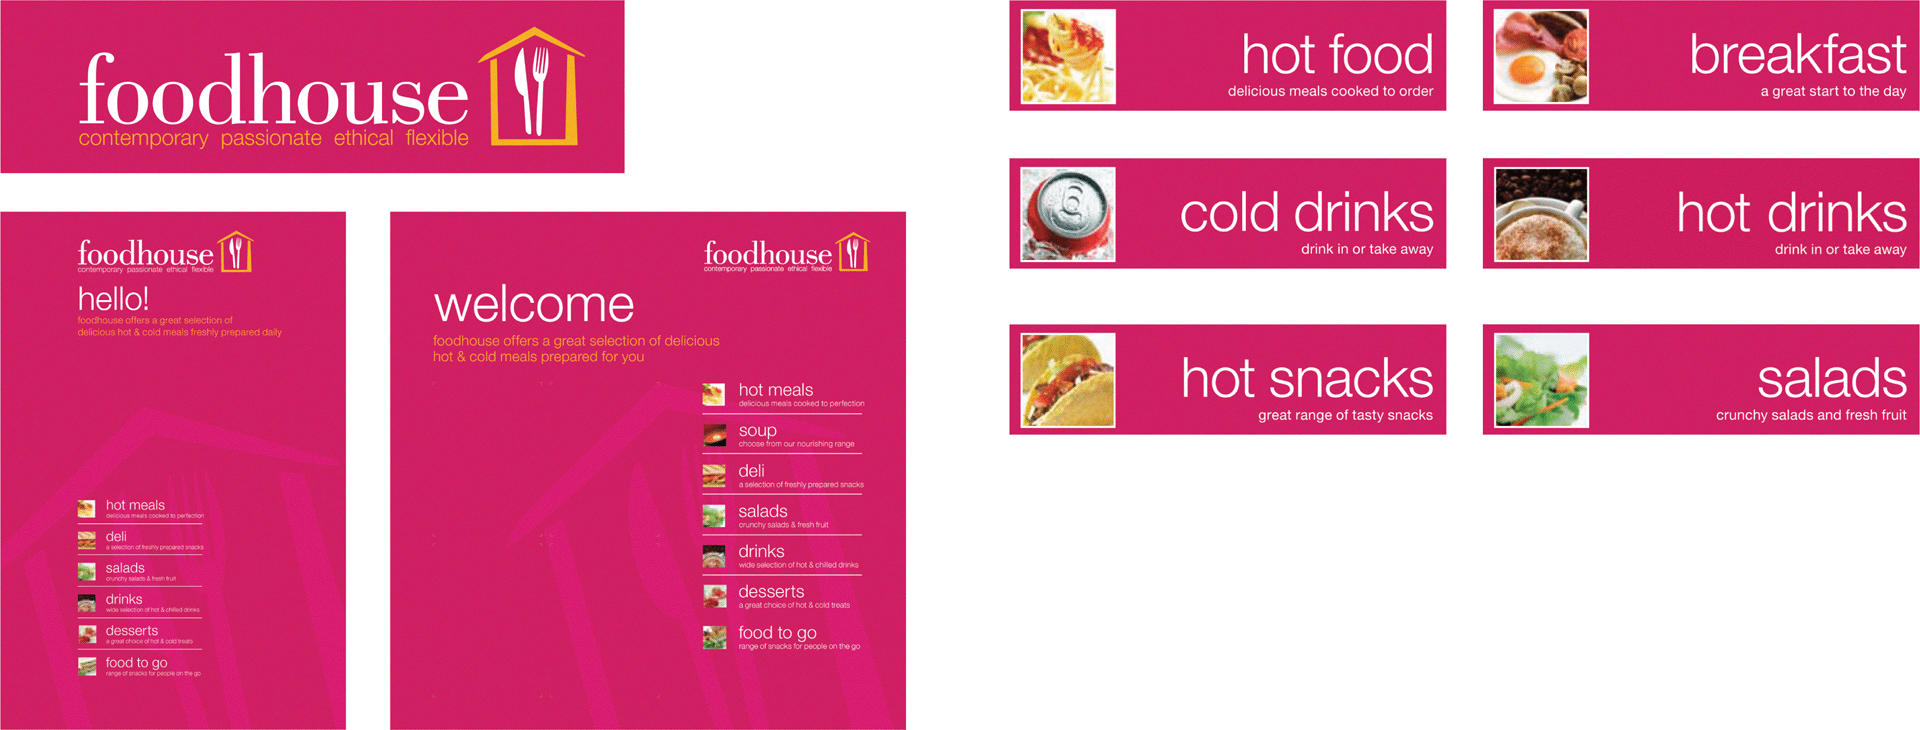 Foodhouse menu